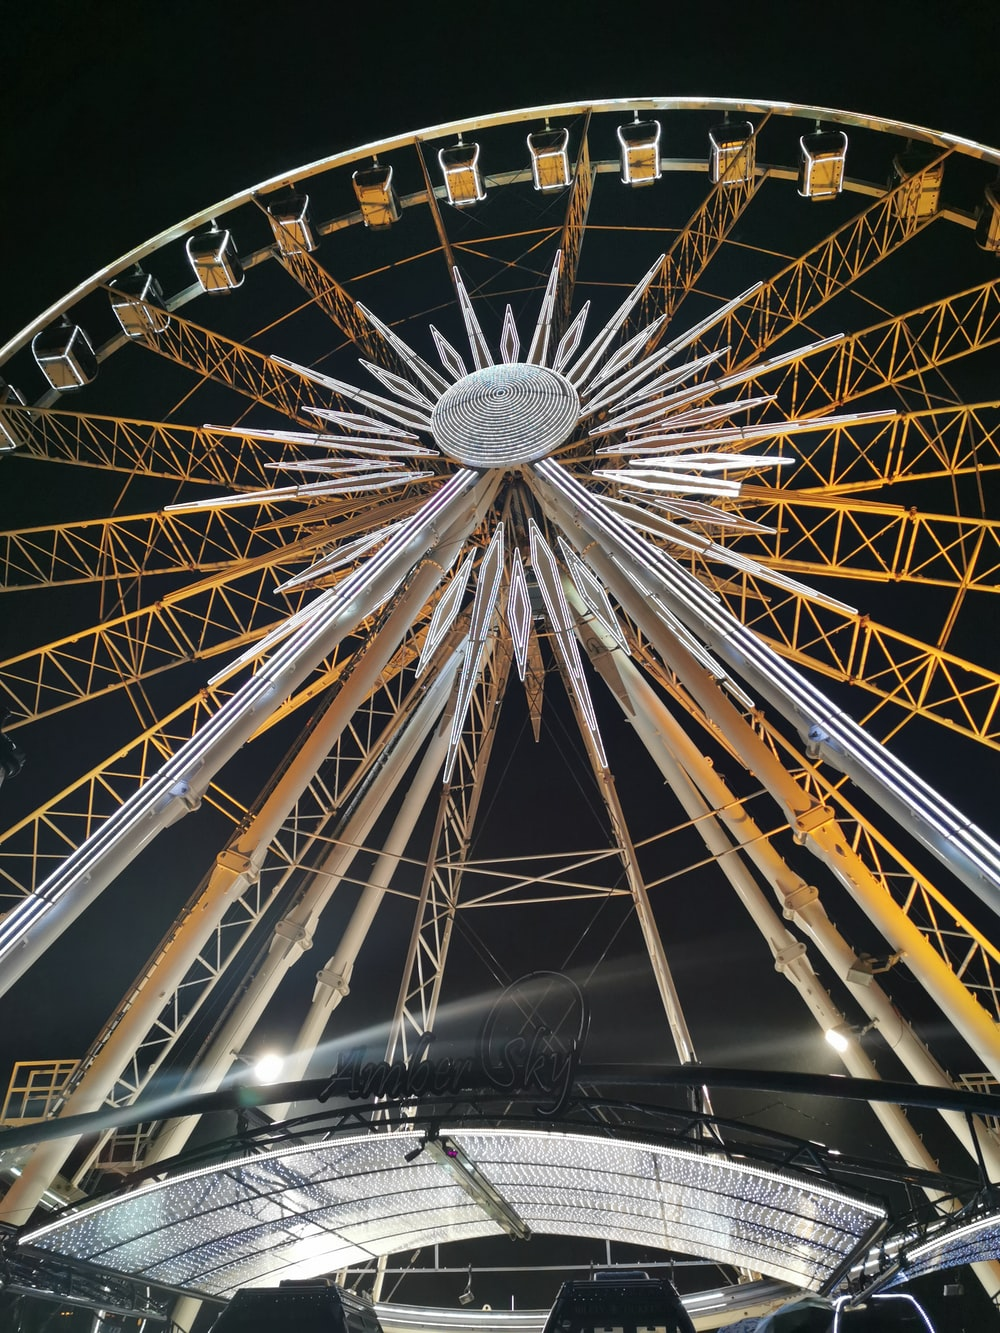 low-angle photo of yellow and grey ferris wheel during night time